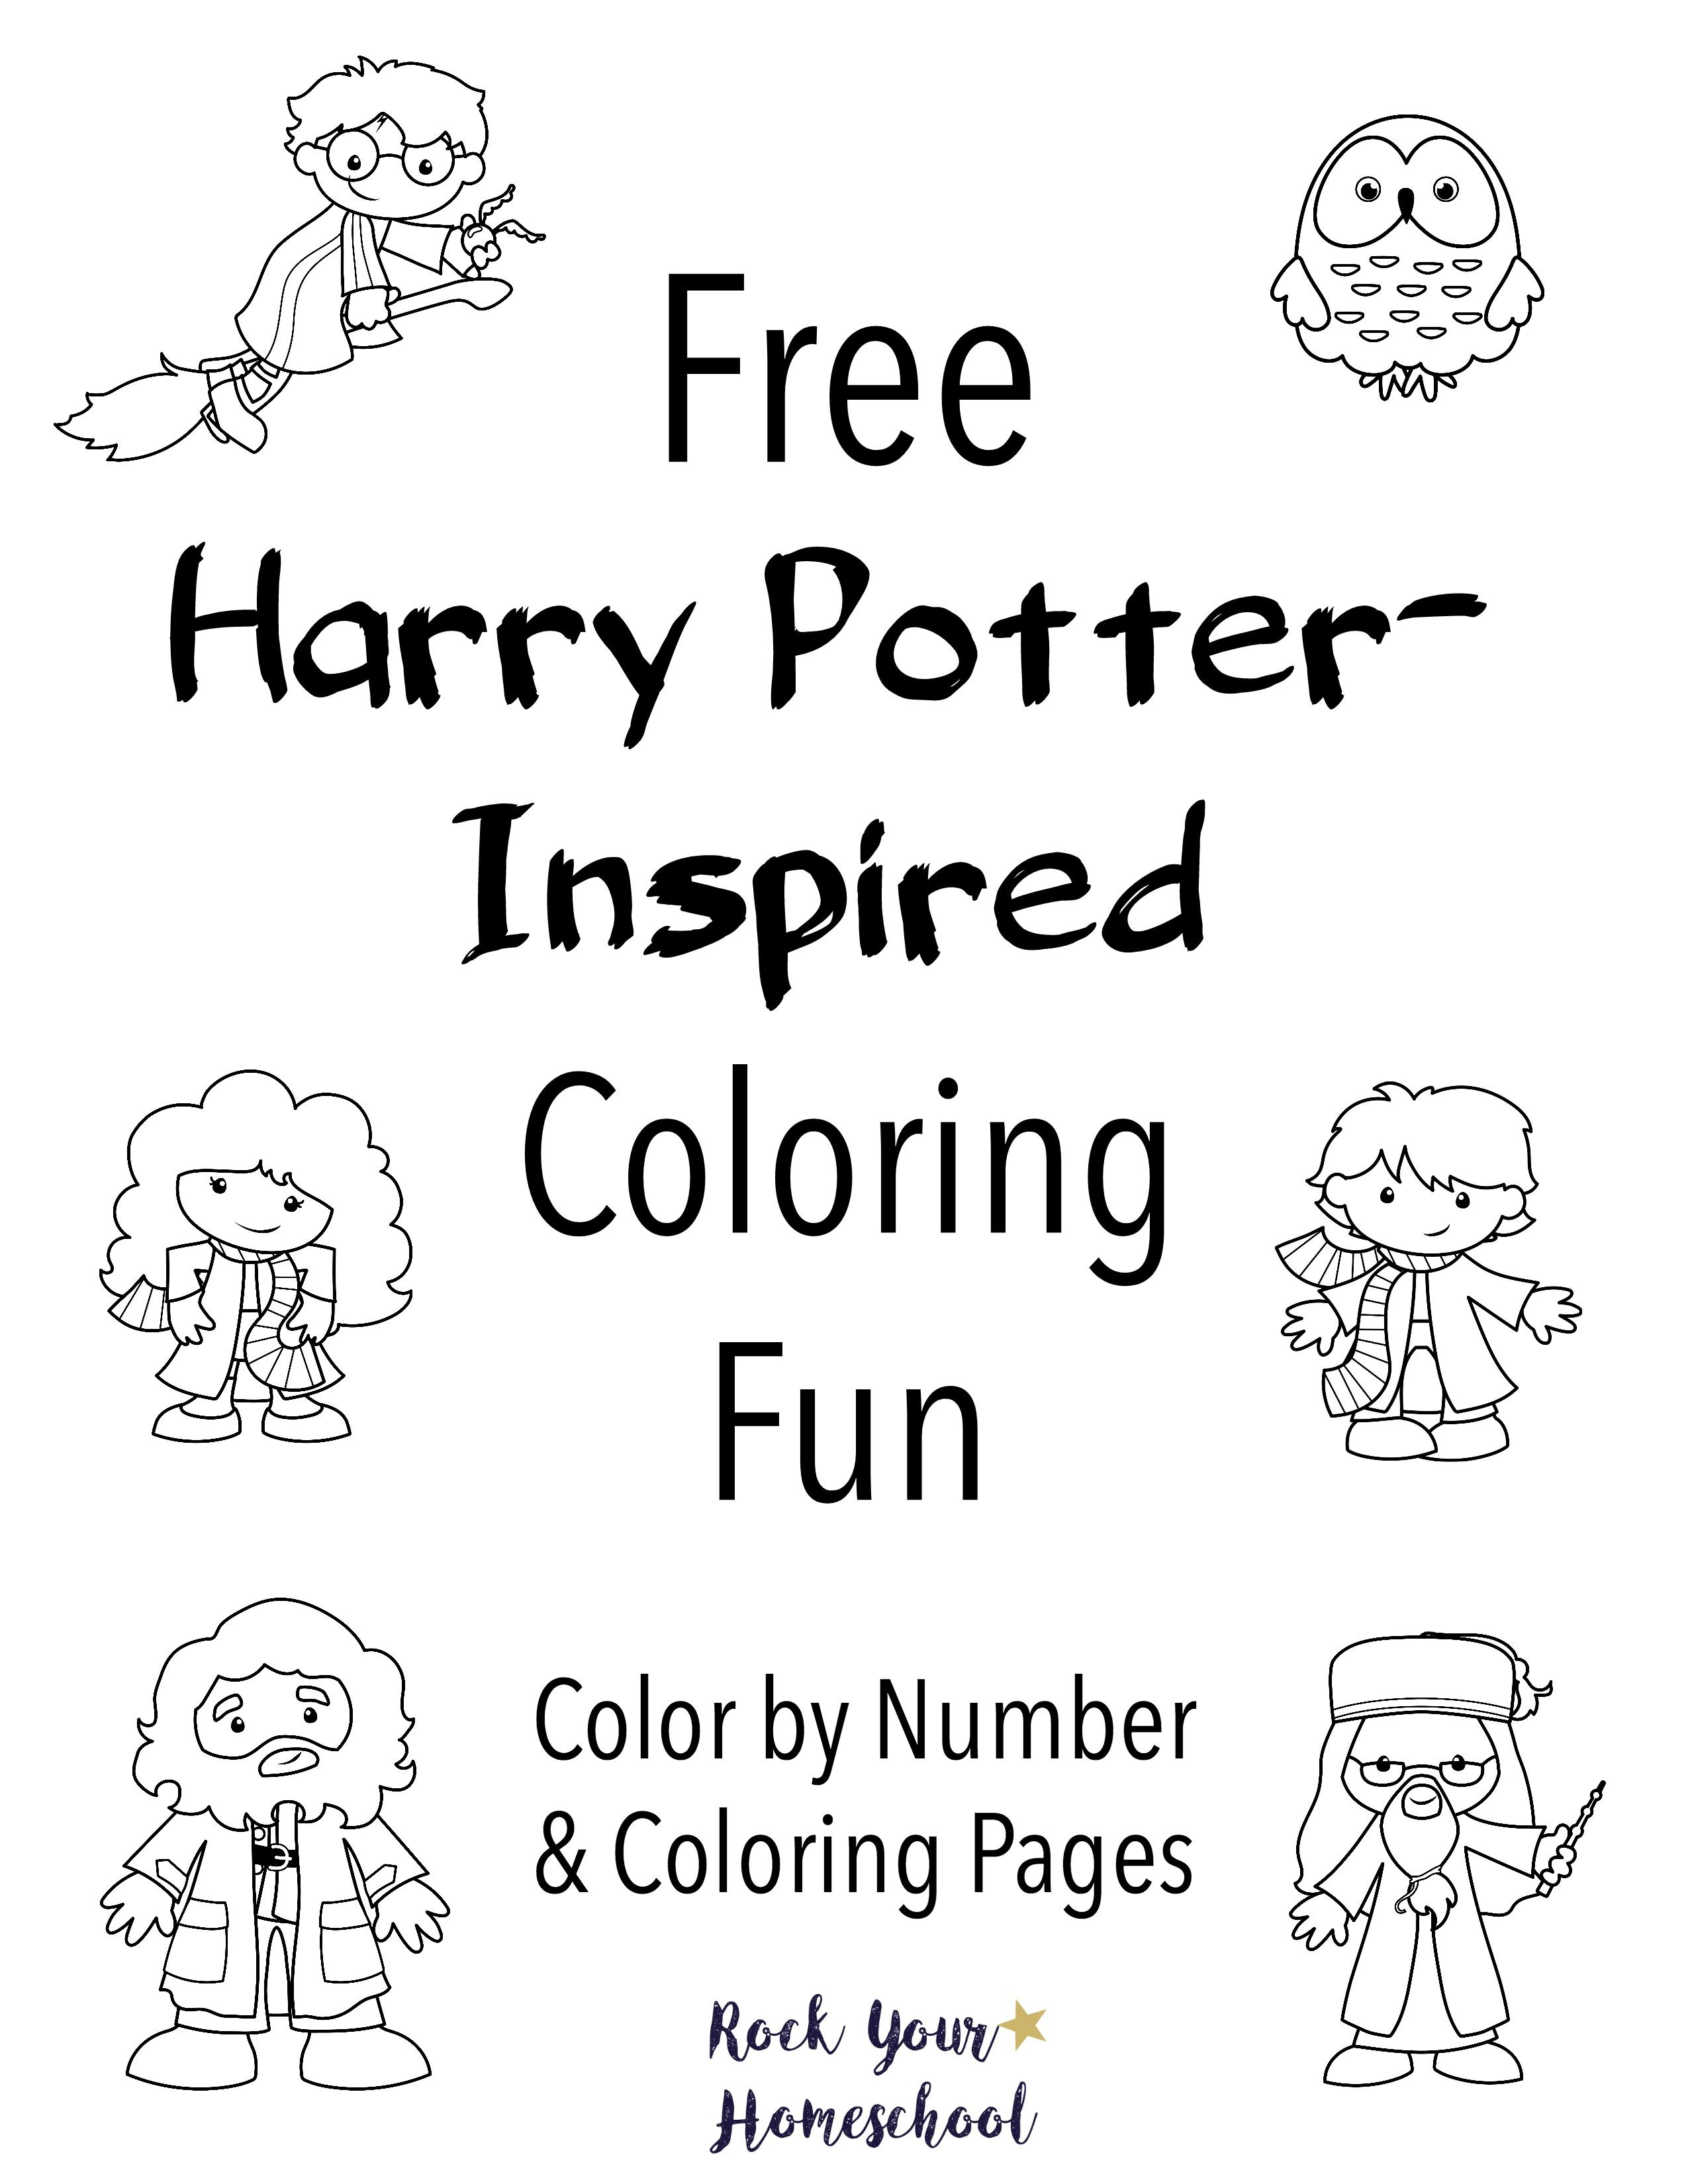 Free Harry Potter Inspired Coloring Fun Harry Potter Printables